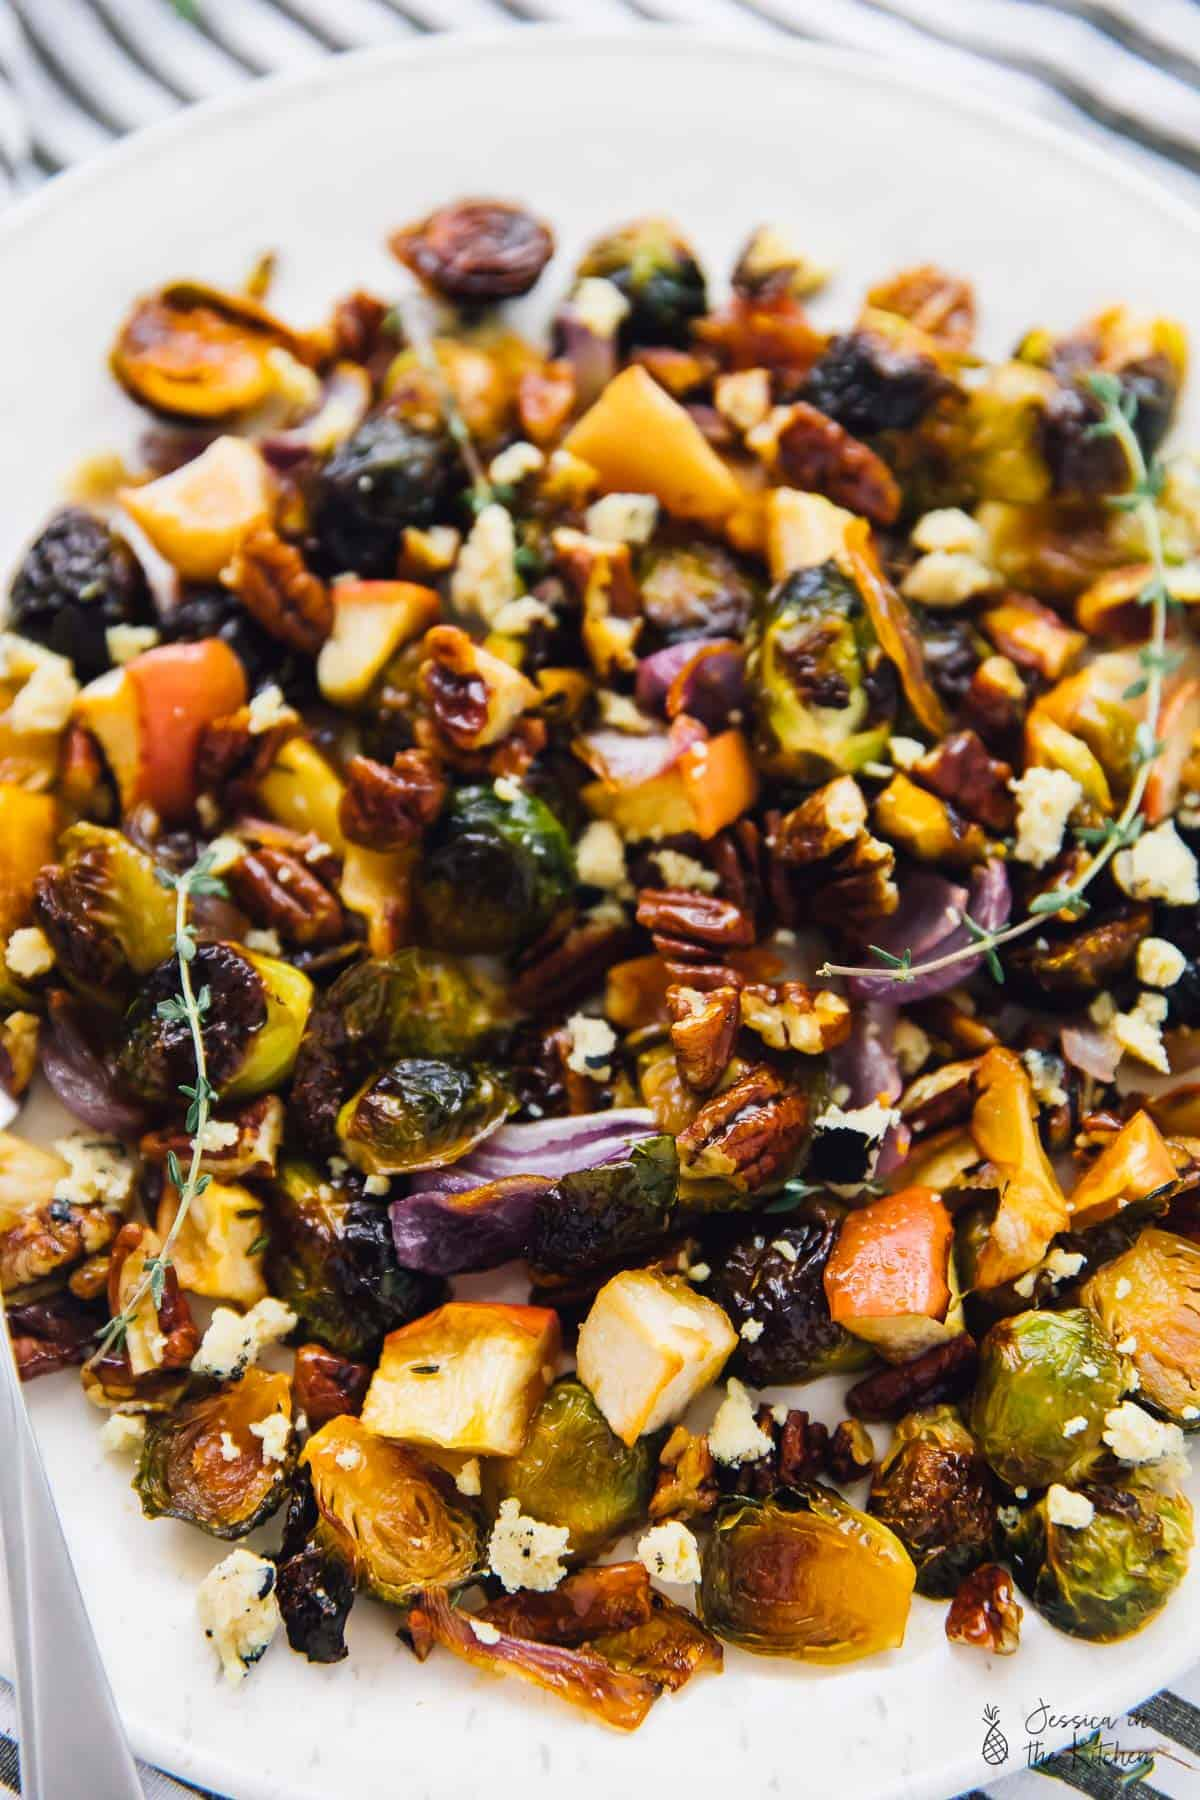 Roasted brussels sprouts with apples and pecans, topped with herbs, on a white plate.